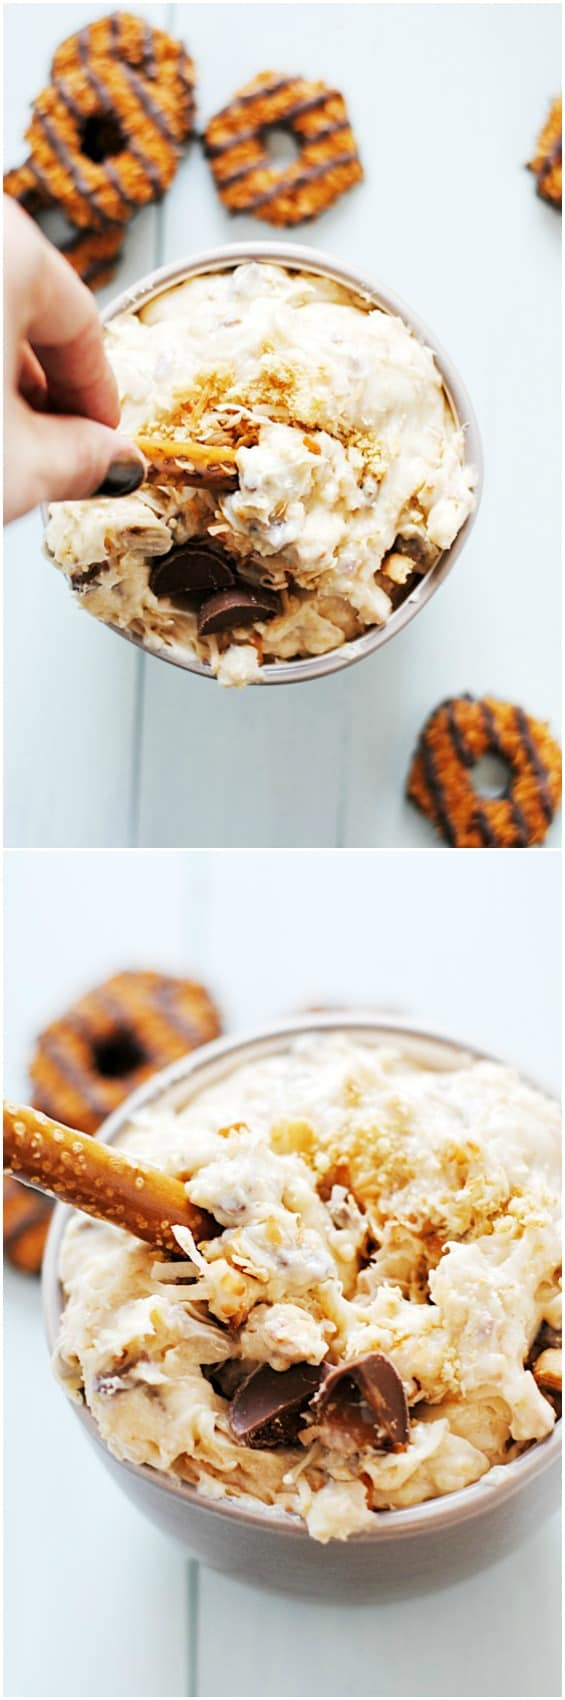 Samoas-inspired Dip | www.somethingswanky.com